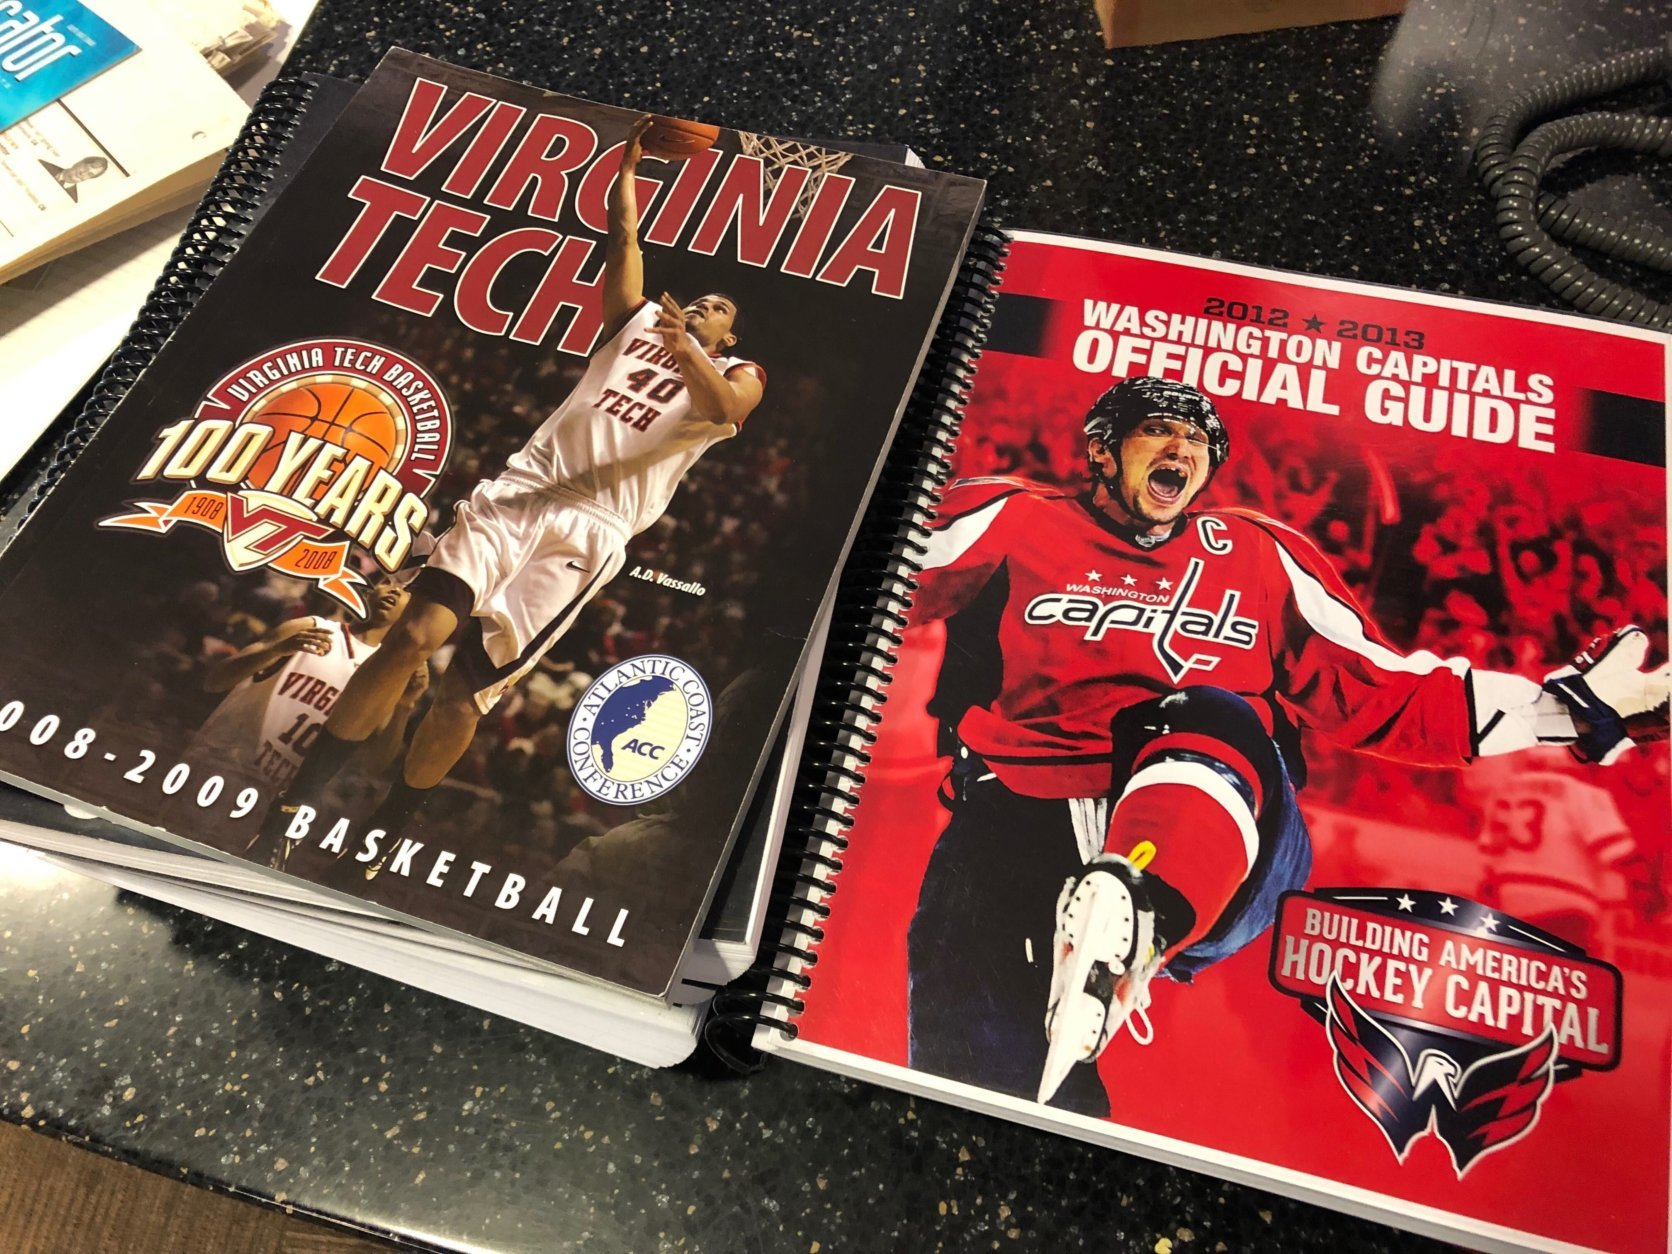 Sports media guides are taking up a sizable chunk of real estate on The Football Table. Who's up for a 2008-2009 Virginia Tech Hokies guide? Get some insight into how they finished 19-15, (WTOP/Julia Ziegler)